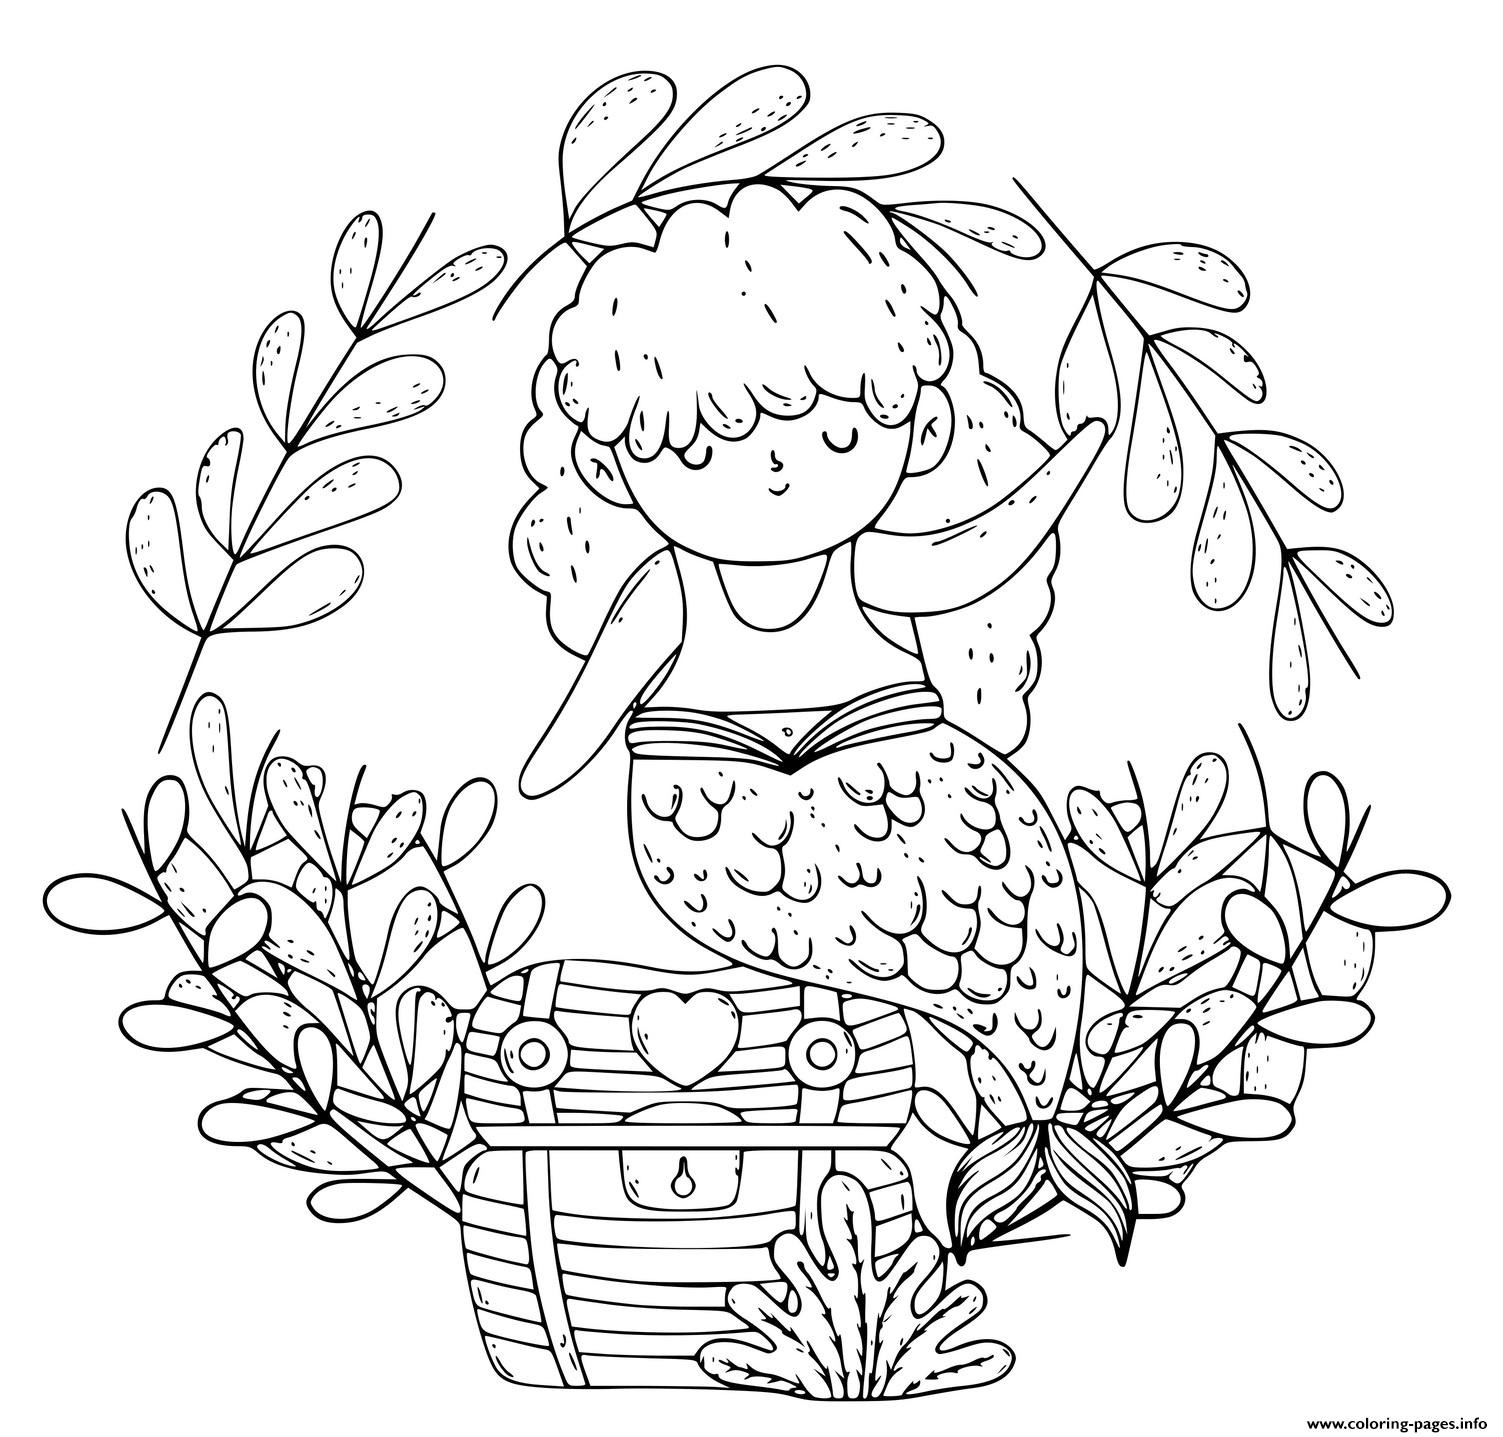 Little Mermaid Girl With A Treasure Chest coloring pages